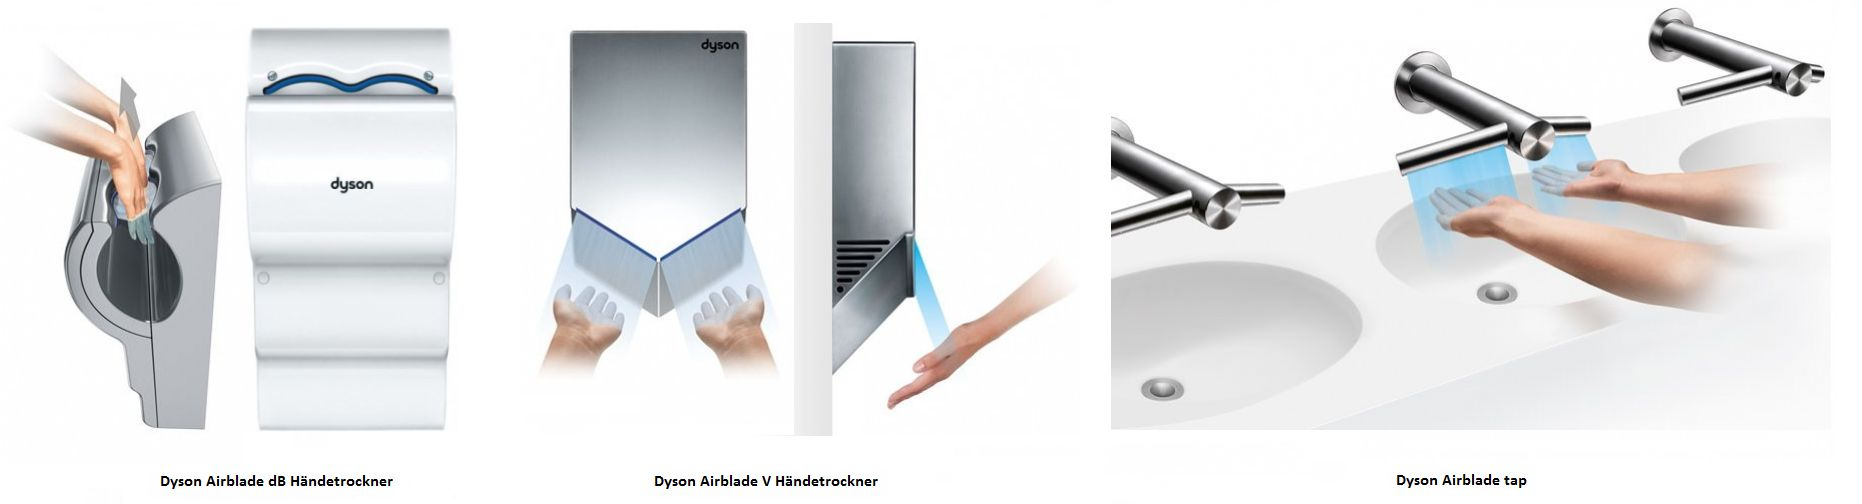 Dyson Airblade Modelle